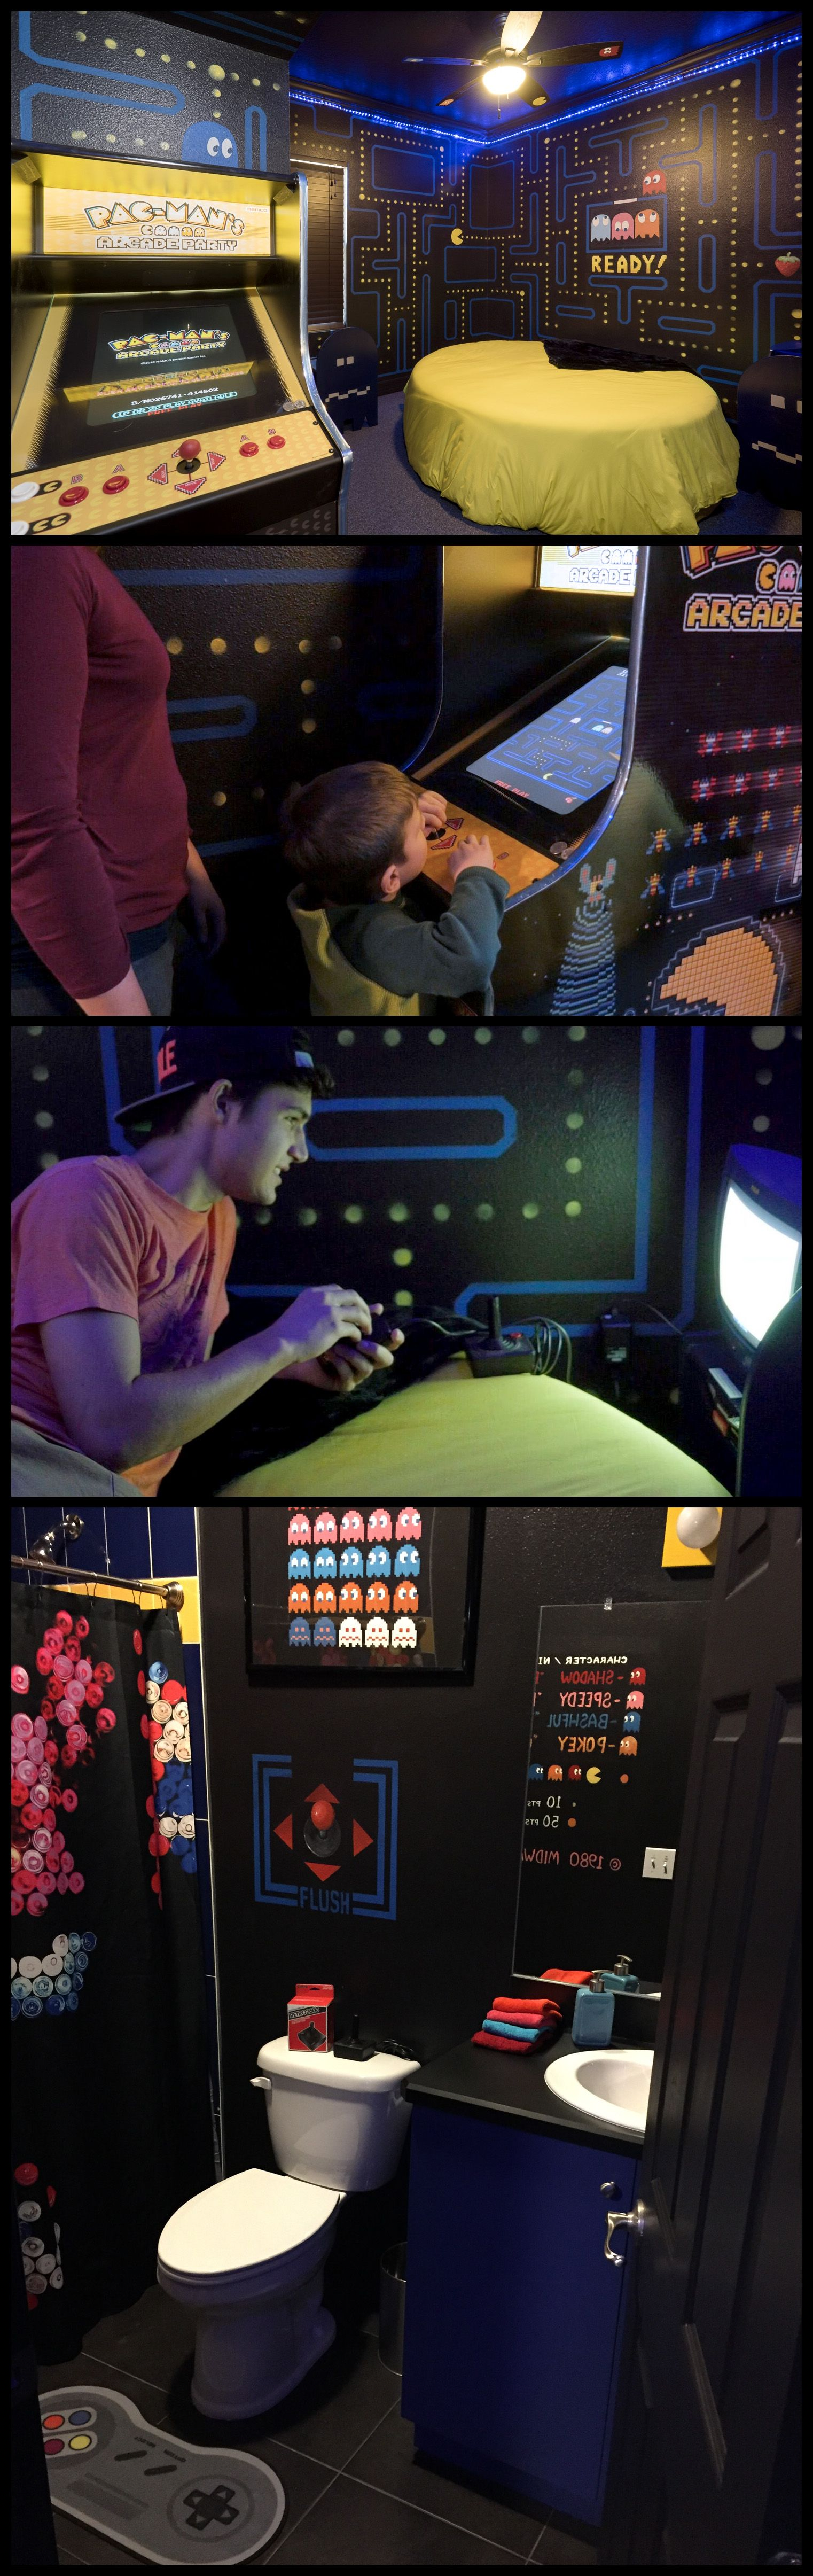 Pin en Gaming and Video Game Rooms